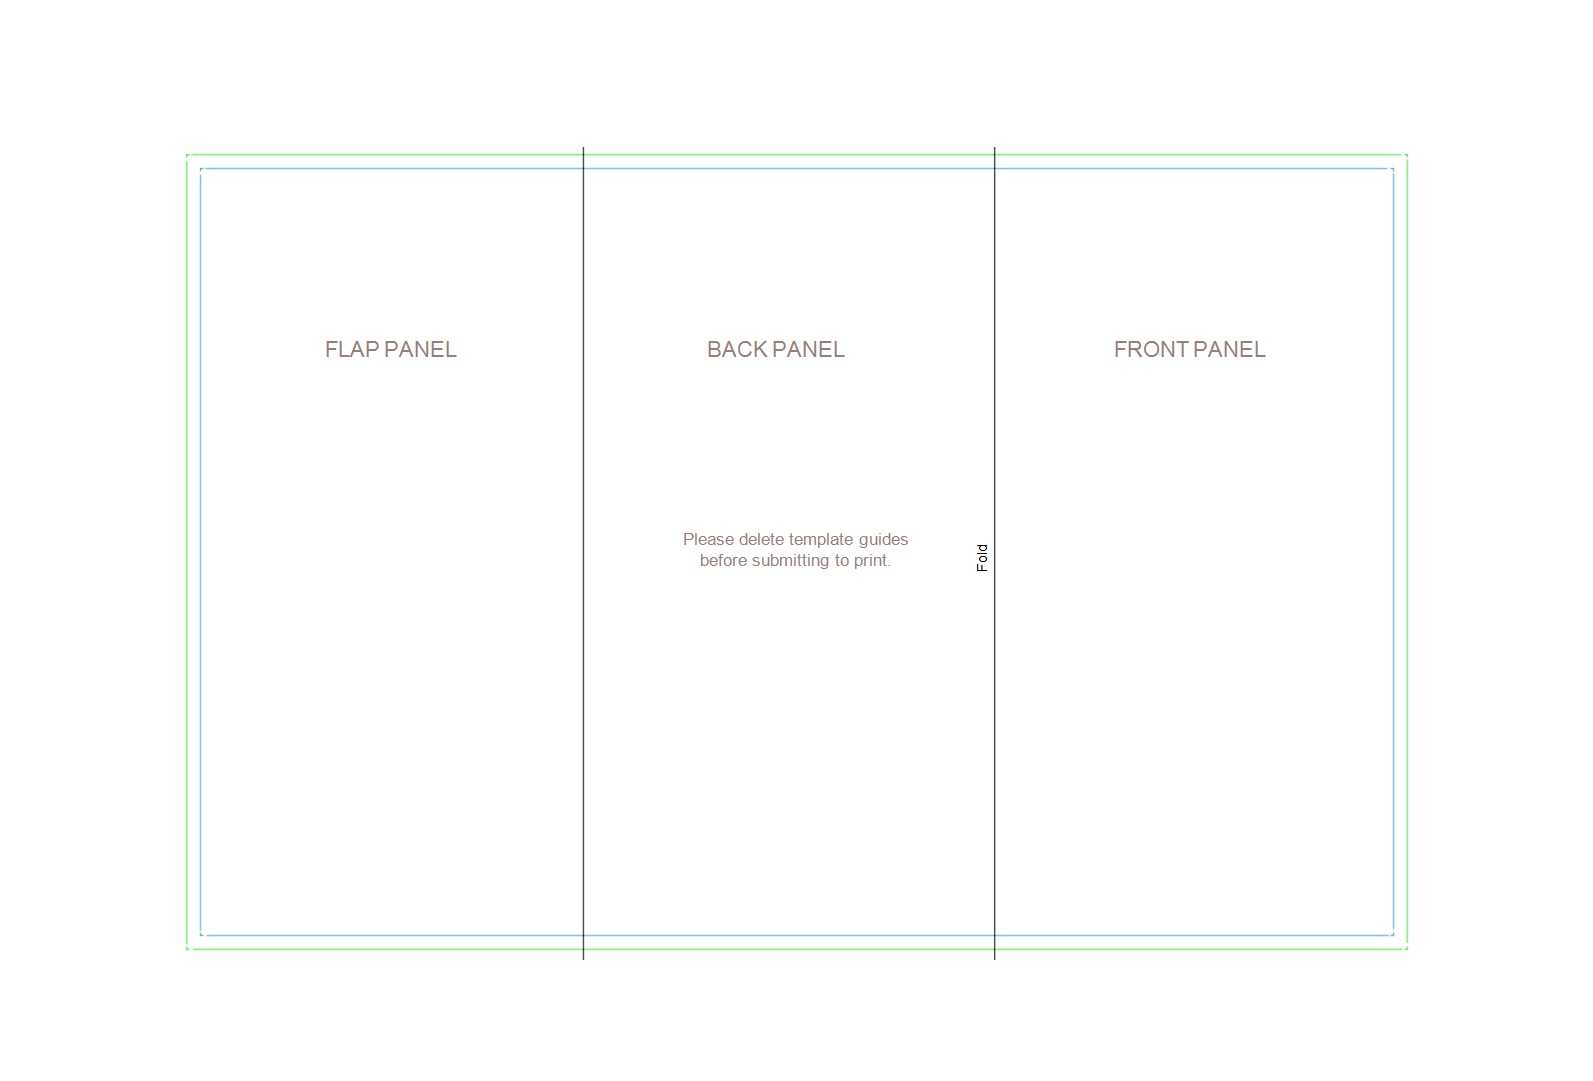 50 Free Pamphlet Templates [Word / Google Docs] ᐅ Template Lab With Regard To Google Docs Brochure Template